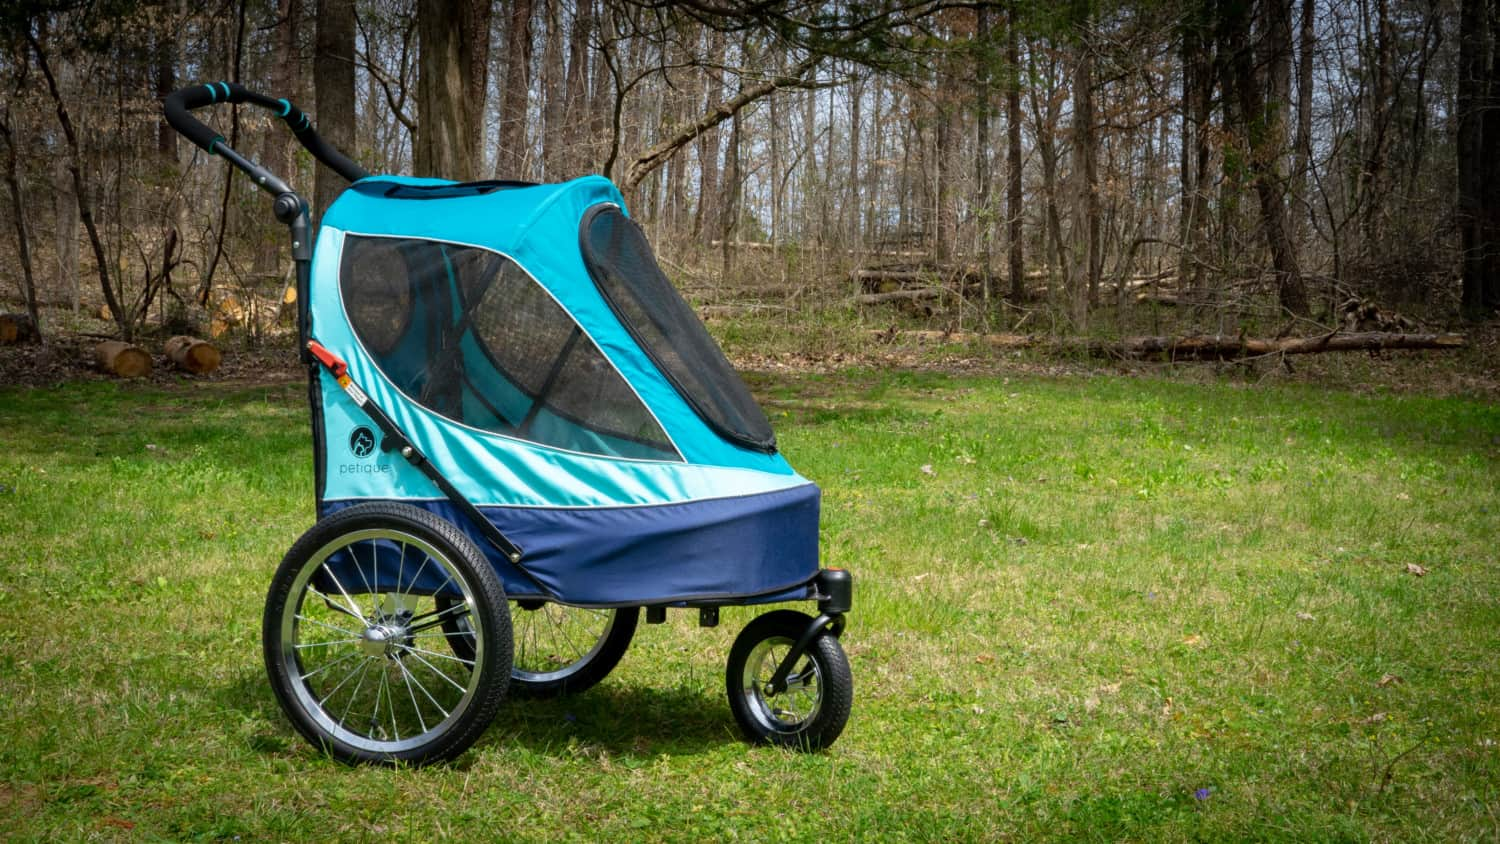 Petique All Terrain Pet Jogger stroller for dogs